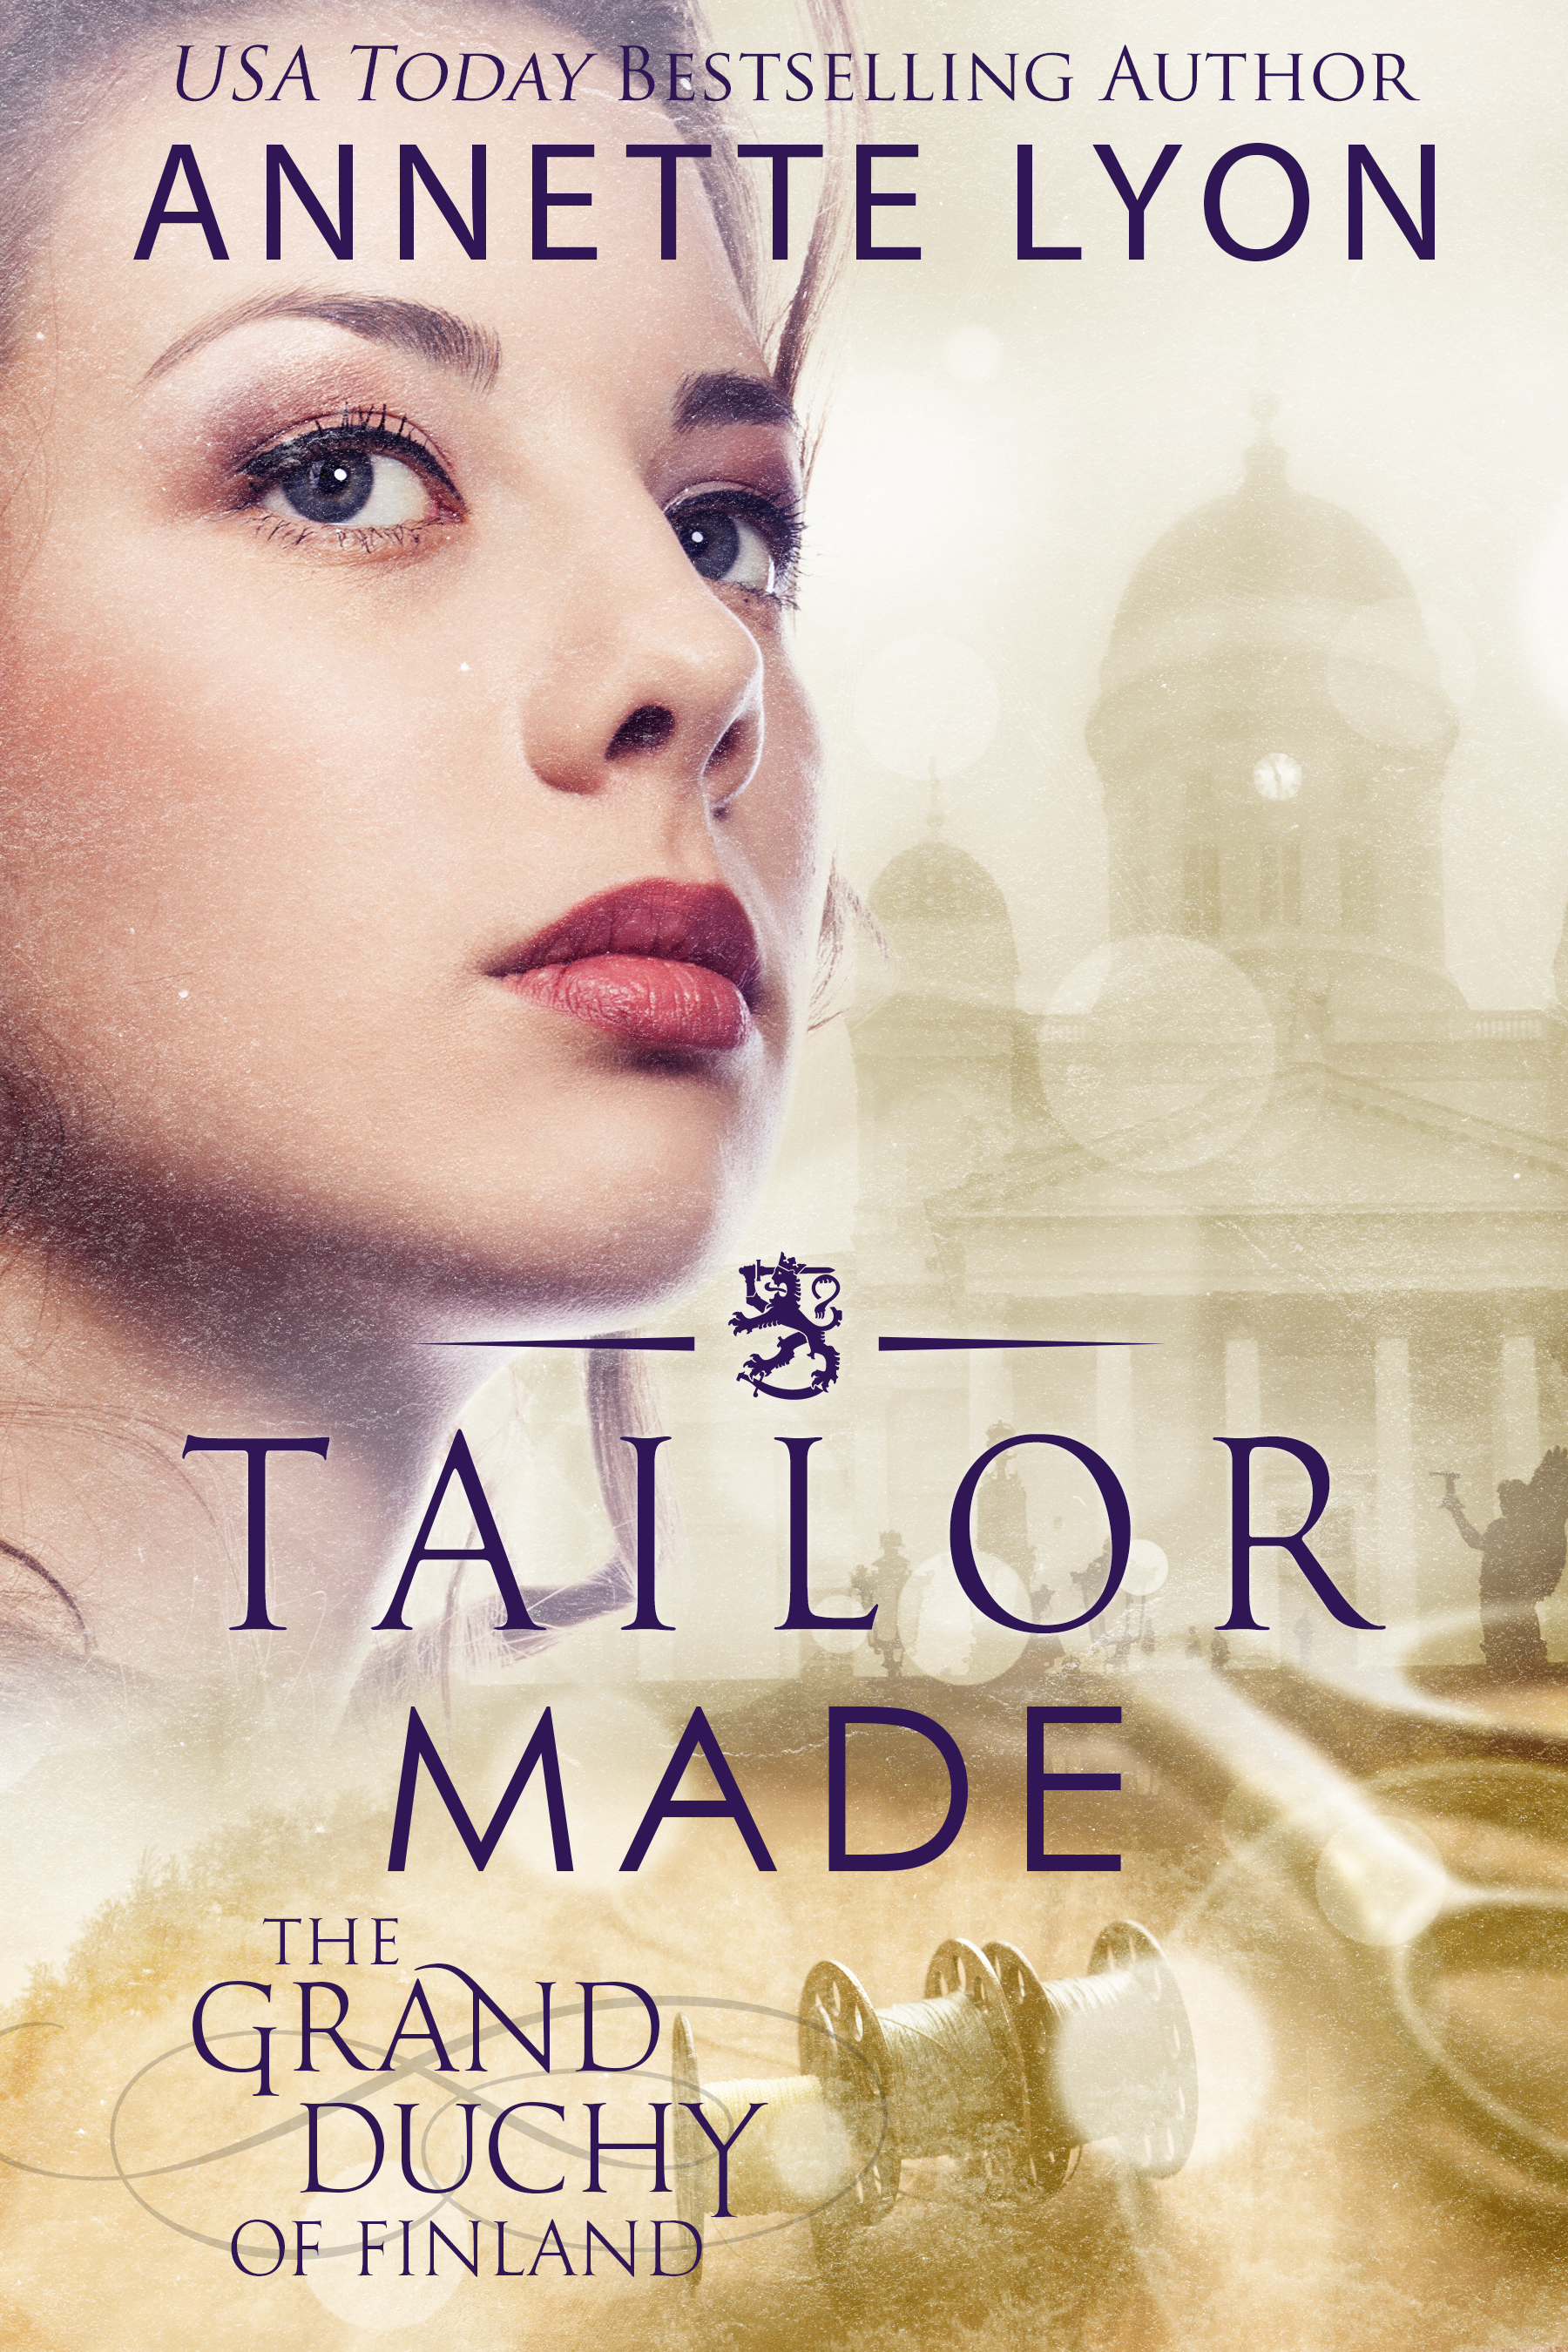 Tailor Made (The Grand Duchy of Finland #1)